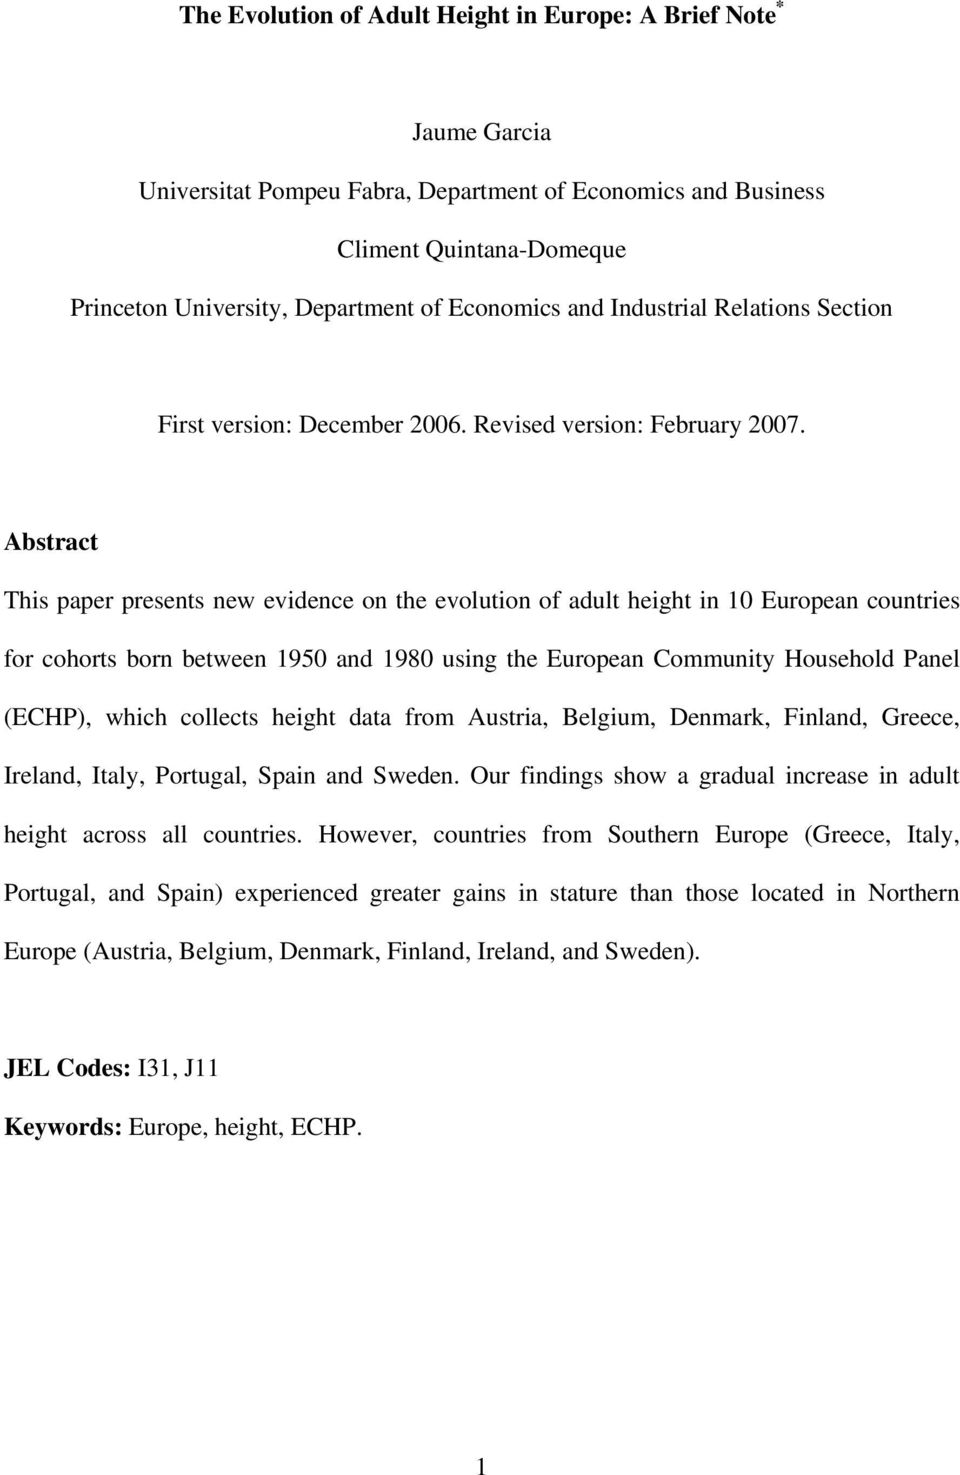 Abstract This paper presents new evidence on the evolution of adult height in 10 European countries for cohorts born between 1950 and 1980 using the European Community Household Panel (ECHP), which